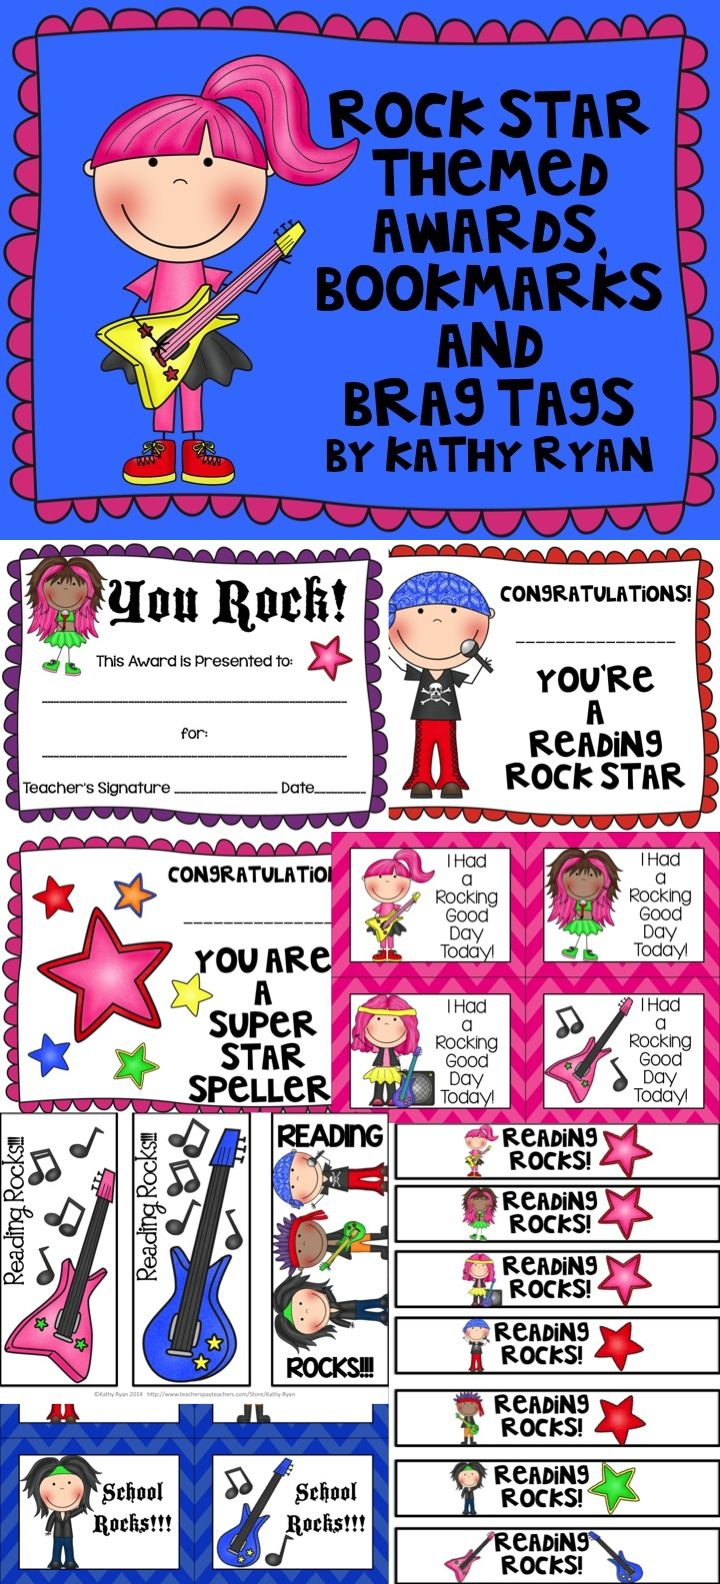 Need something to congratulate your students on a job well done? Try these Rock Star Themed Awards, Certificates, and Brag Tags. This collection contains dozens of different printable awards, bookmarks, bracelets, and certificates to help celebrate the your students' achievements throughout the year.